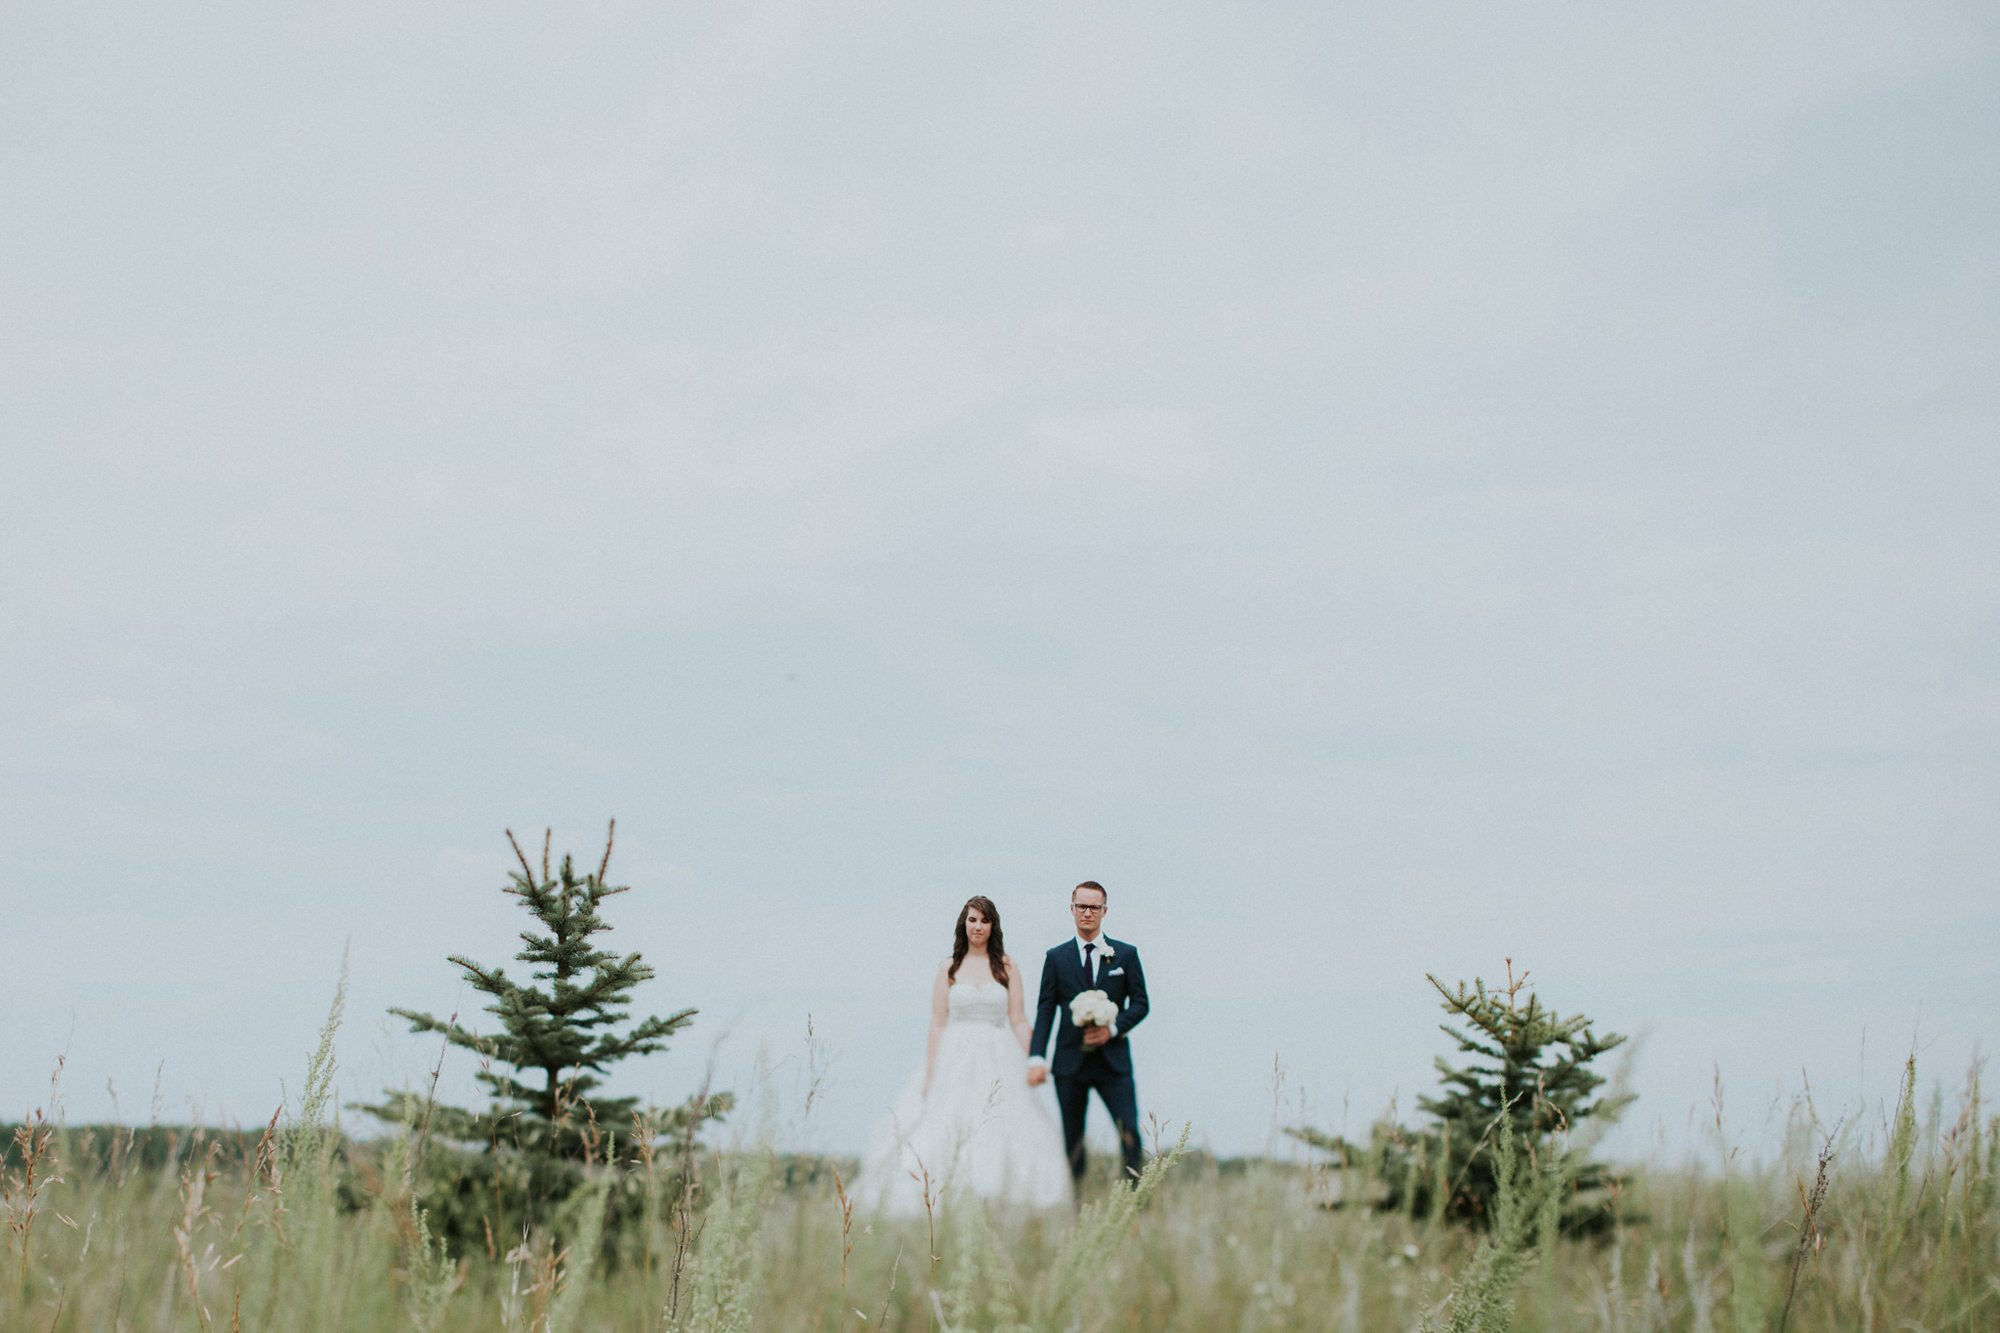 579-winnipeg-wedding-photographer